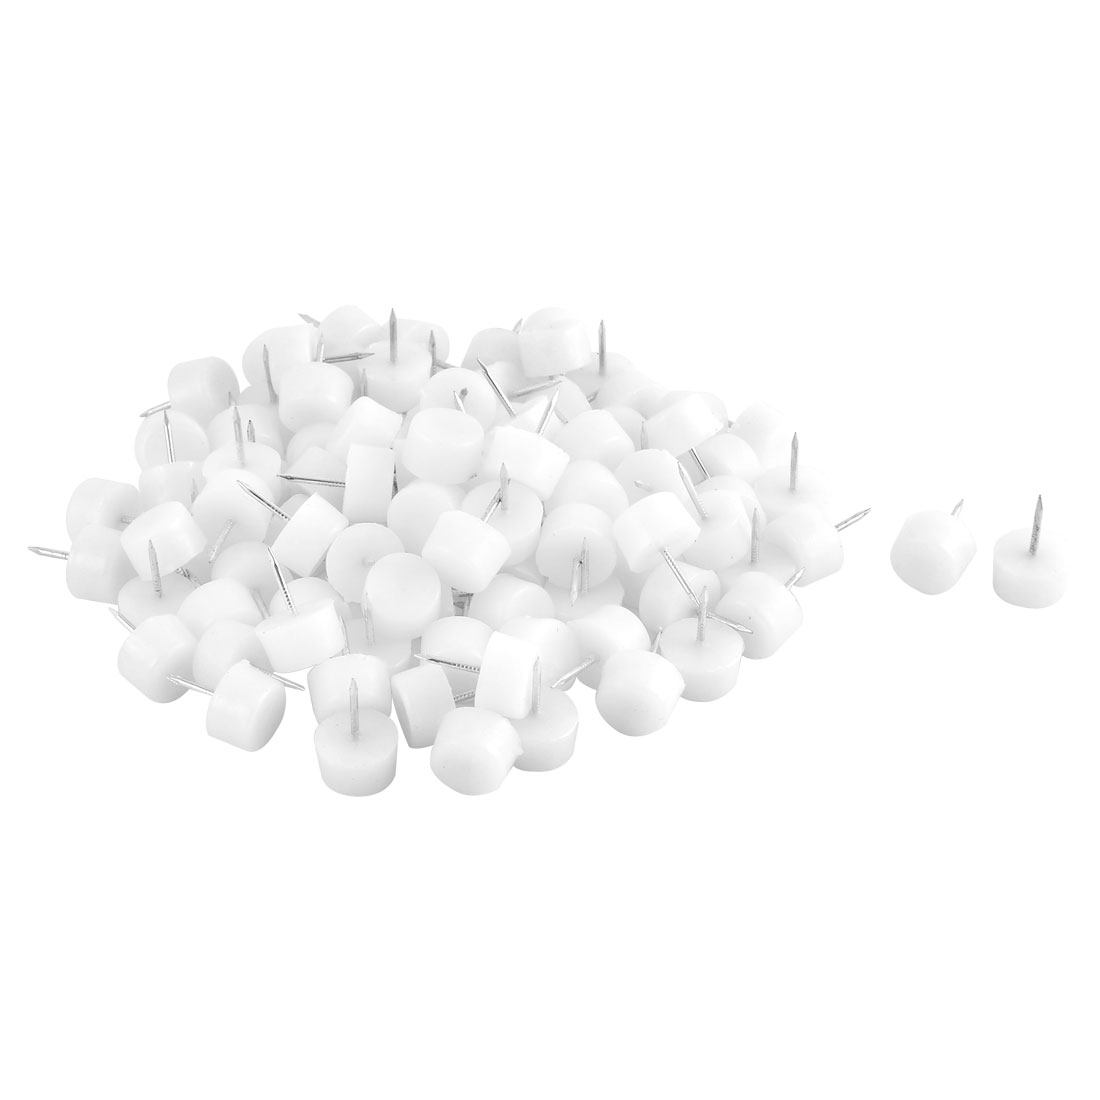 Home Plastic Floor Protector Chair Table Furniture Legs Glide Nail White 10 x 16mm 100pcs